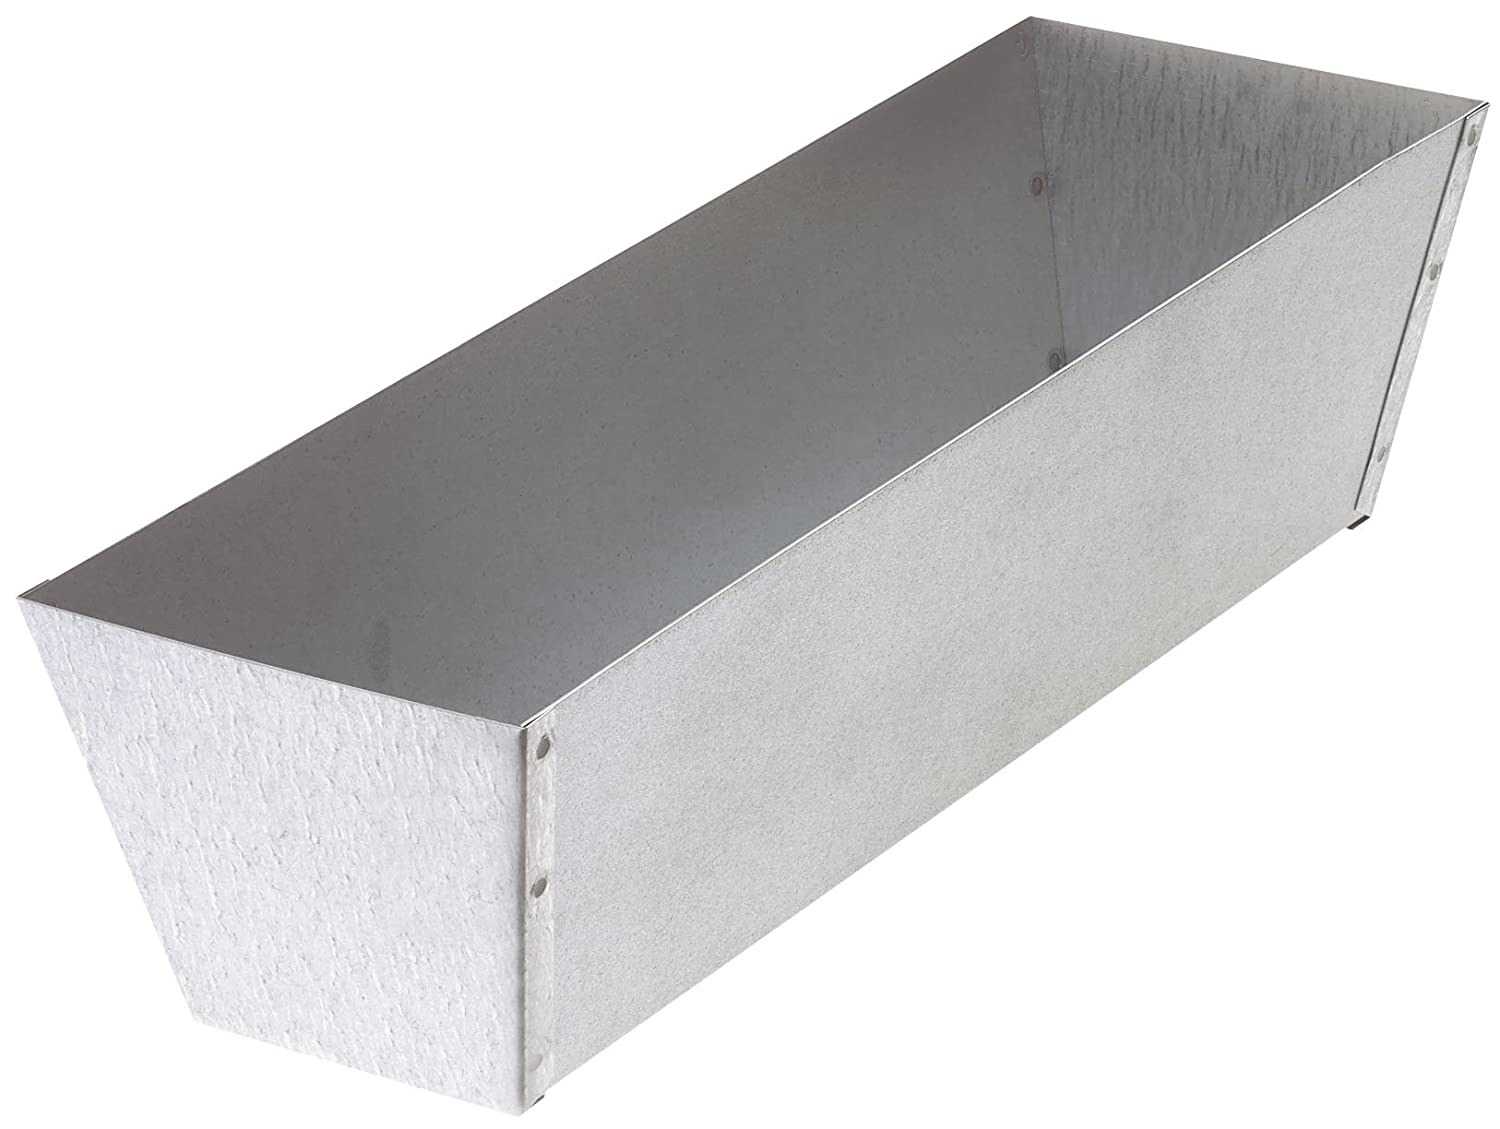 Warner 14 Galvanized Steel Drywall Mud Pan, 267 Warner Manufacturing Co.